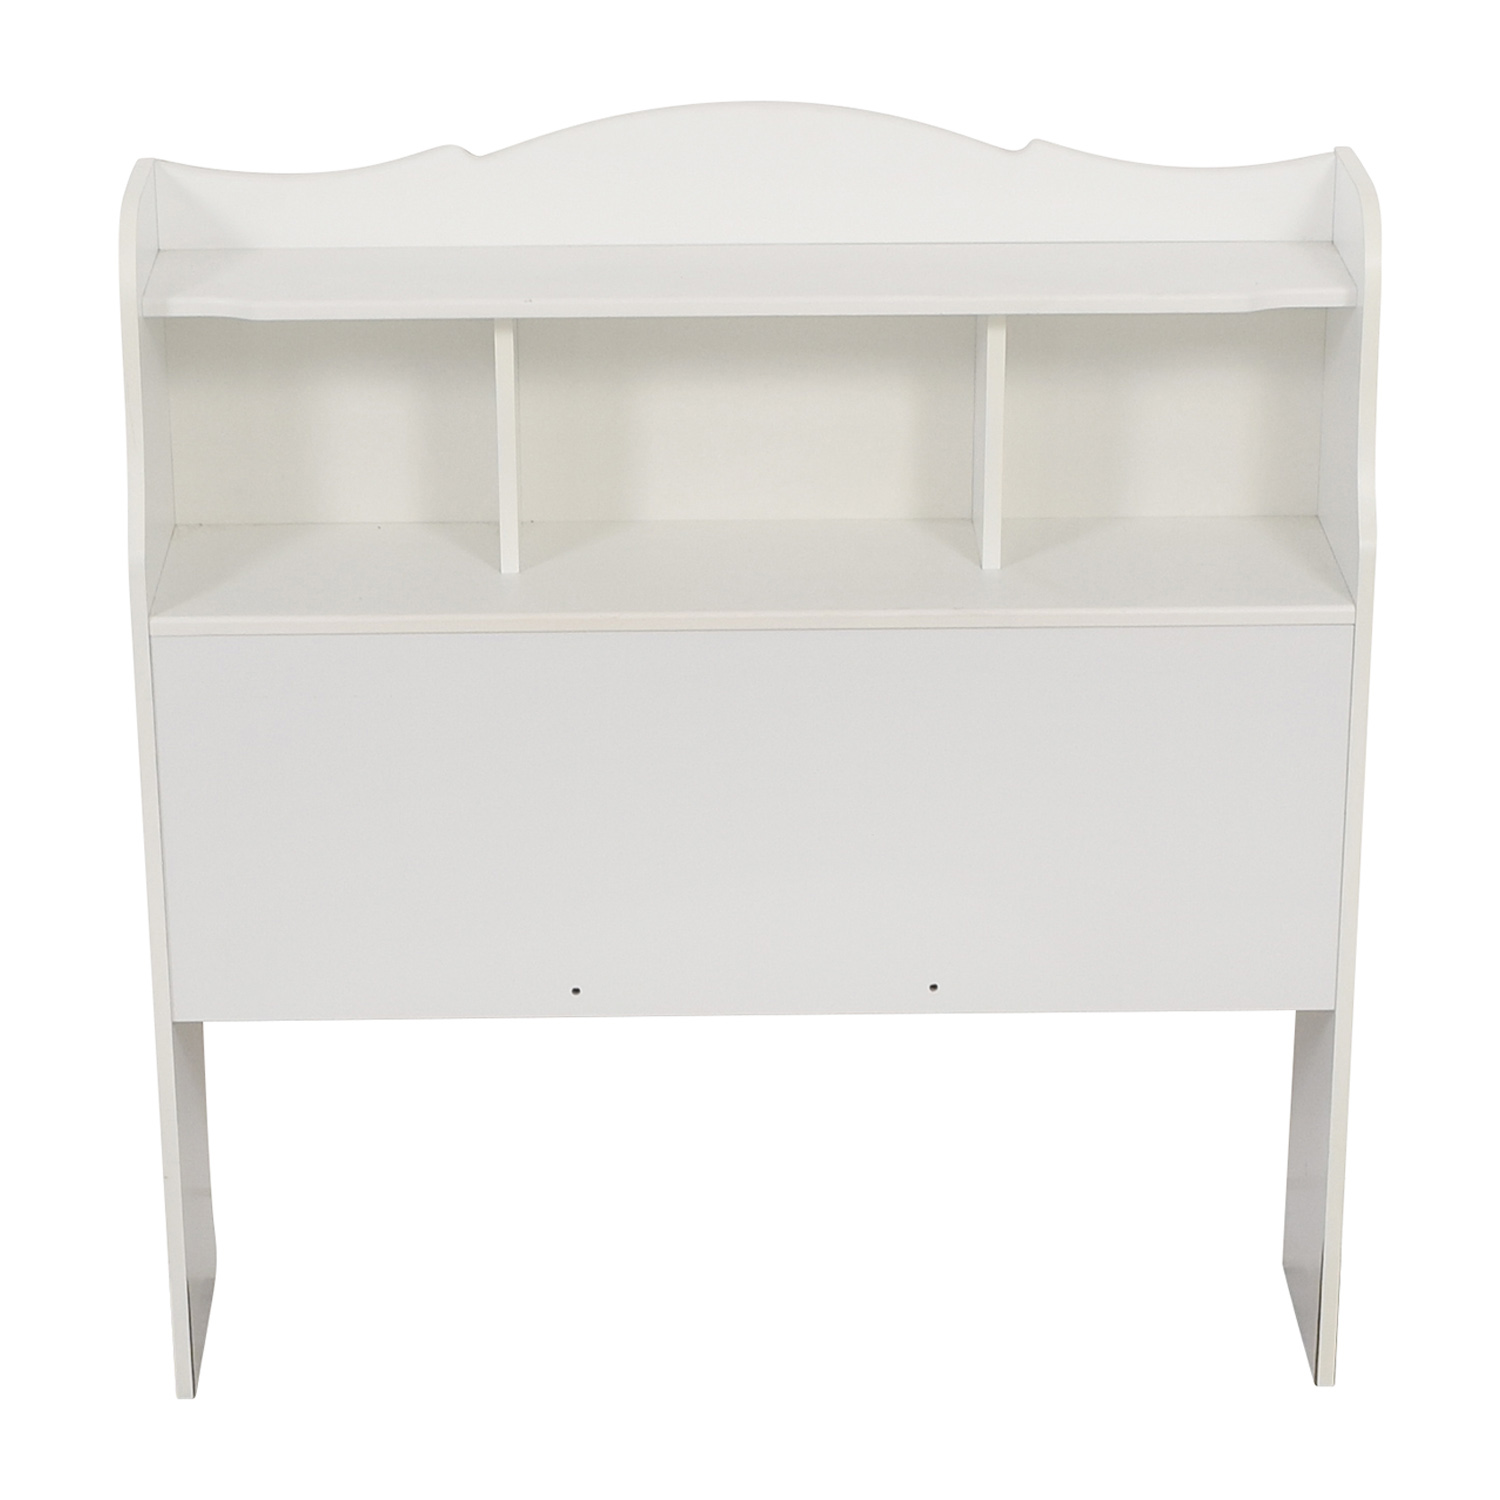 90 Off White Twin Bookcase Headboard Beds